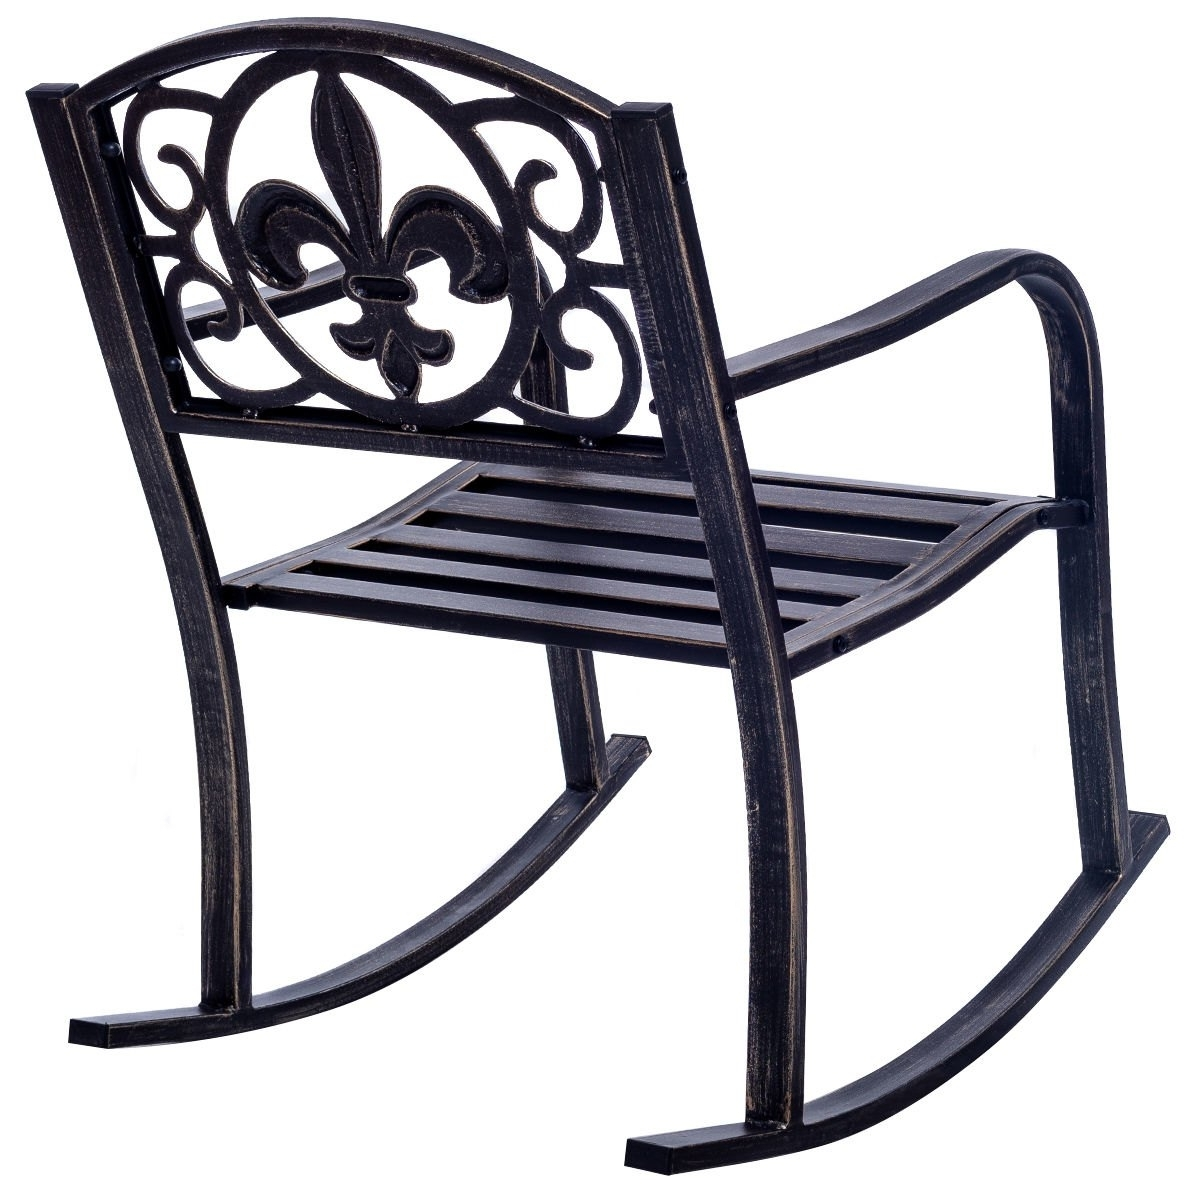 Outdoor Patio Metal Rocking Chairs Intended For 2018 Costway: Costway Patio Metal Rocking Chair Porch Seat Deck Outdoor (View 12 of 20)